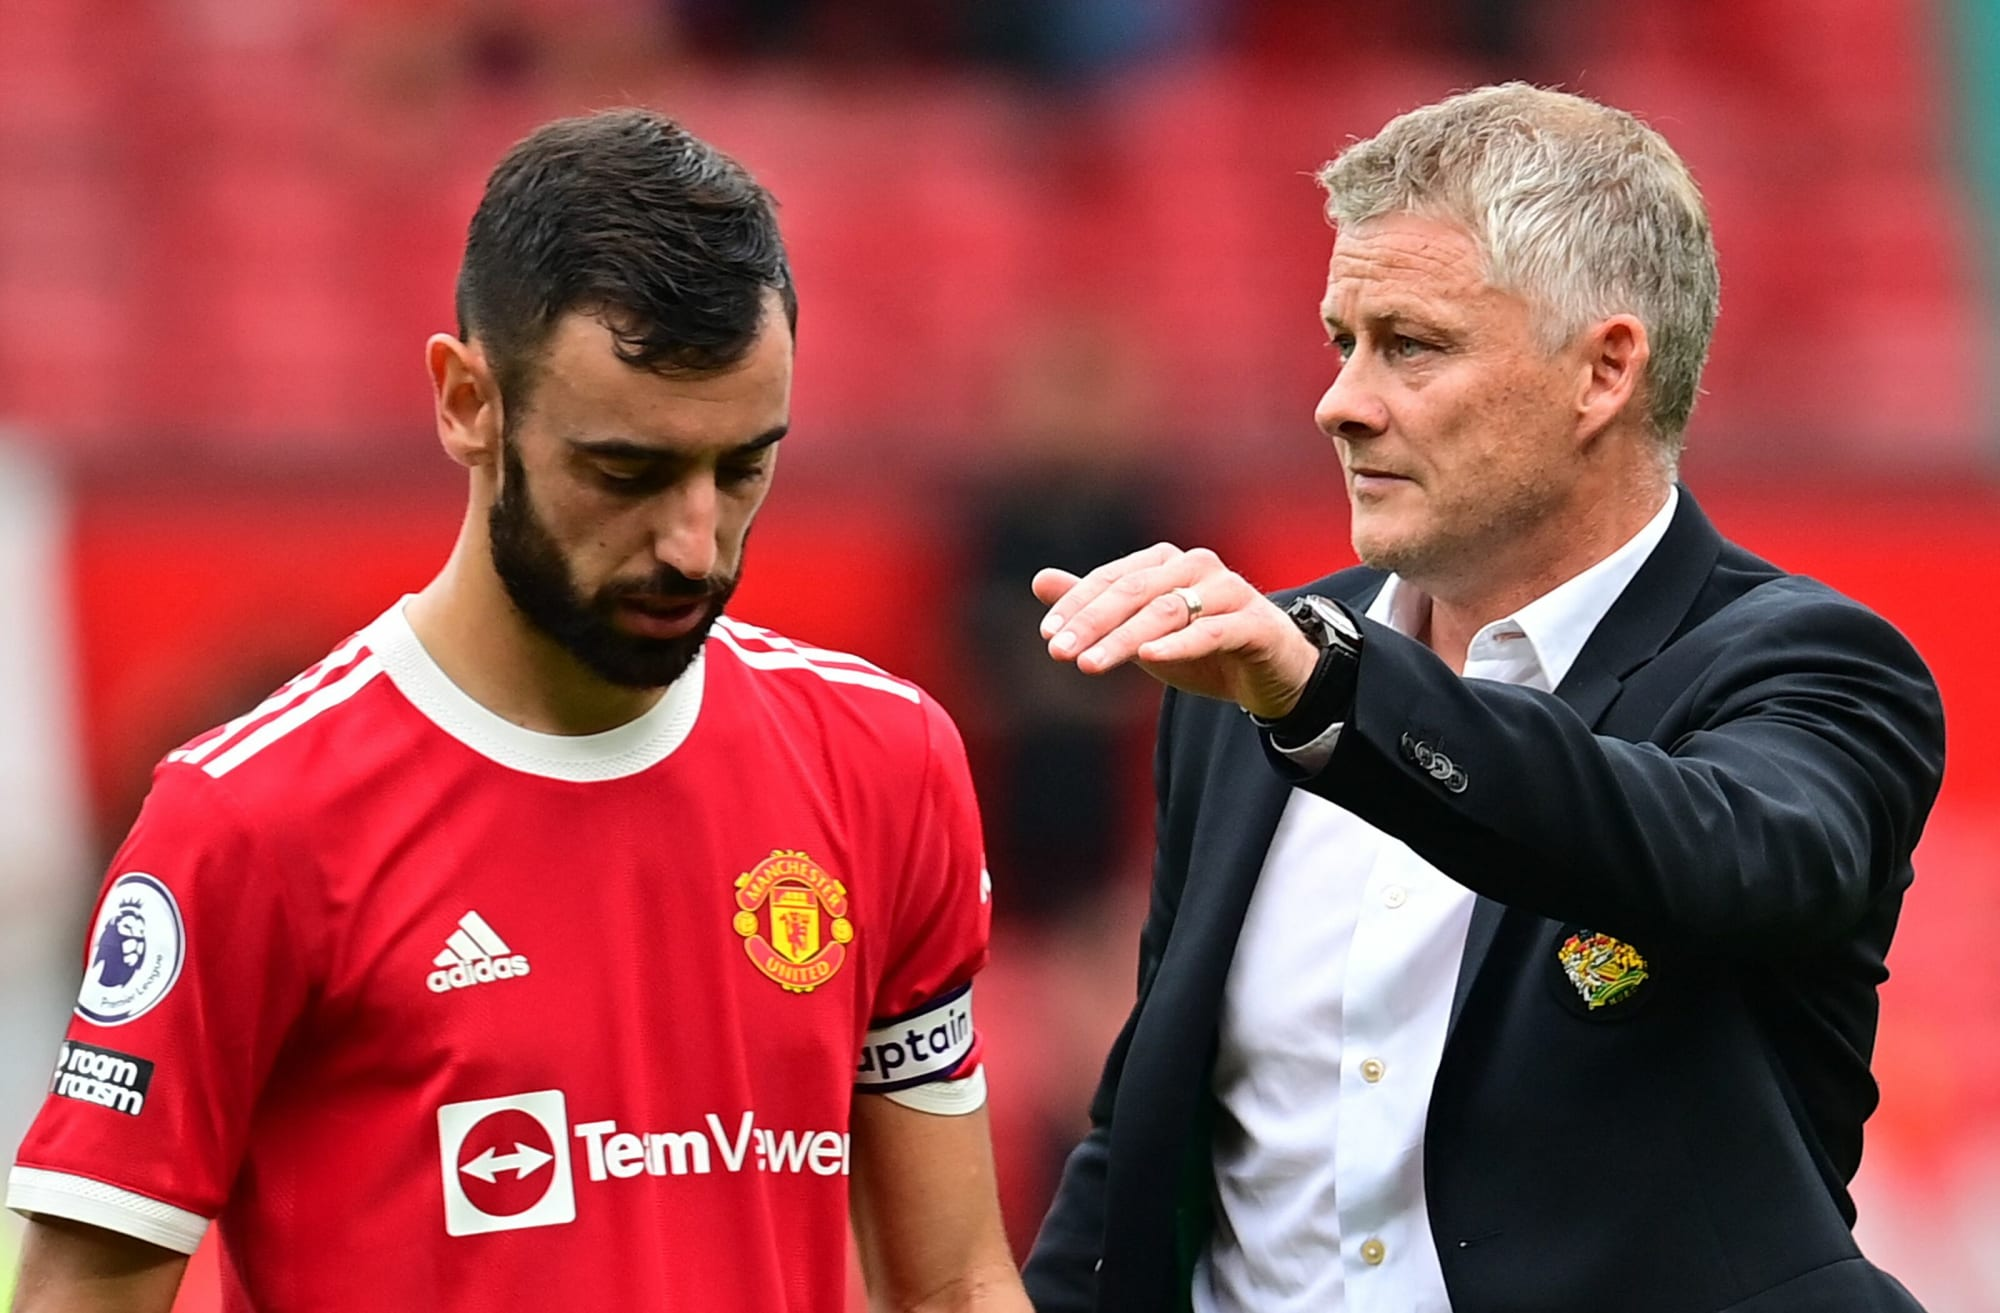 Fernandes reacts to Solskjaer Manchester United exit rumours